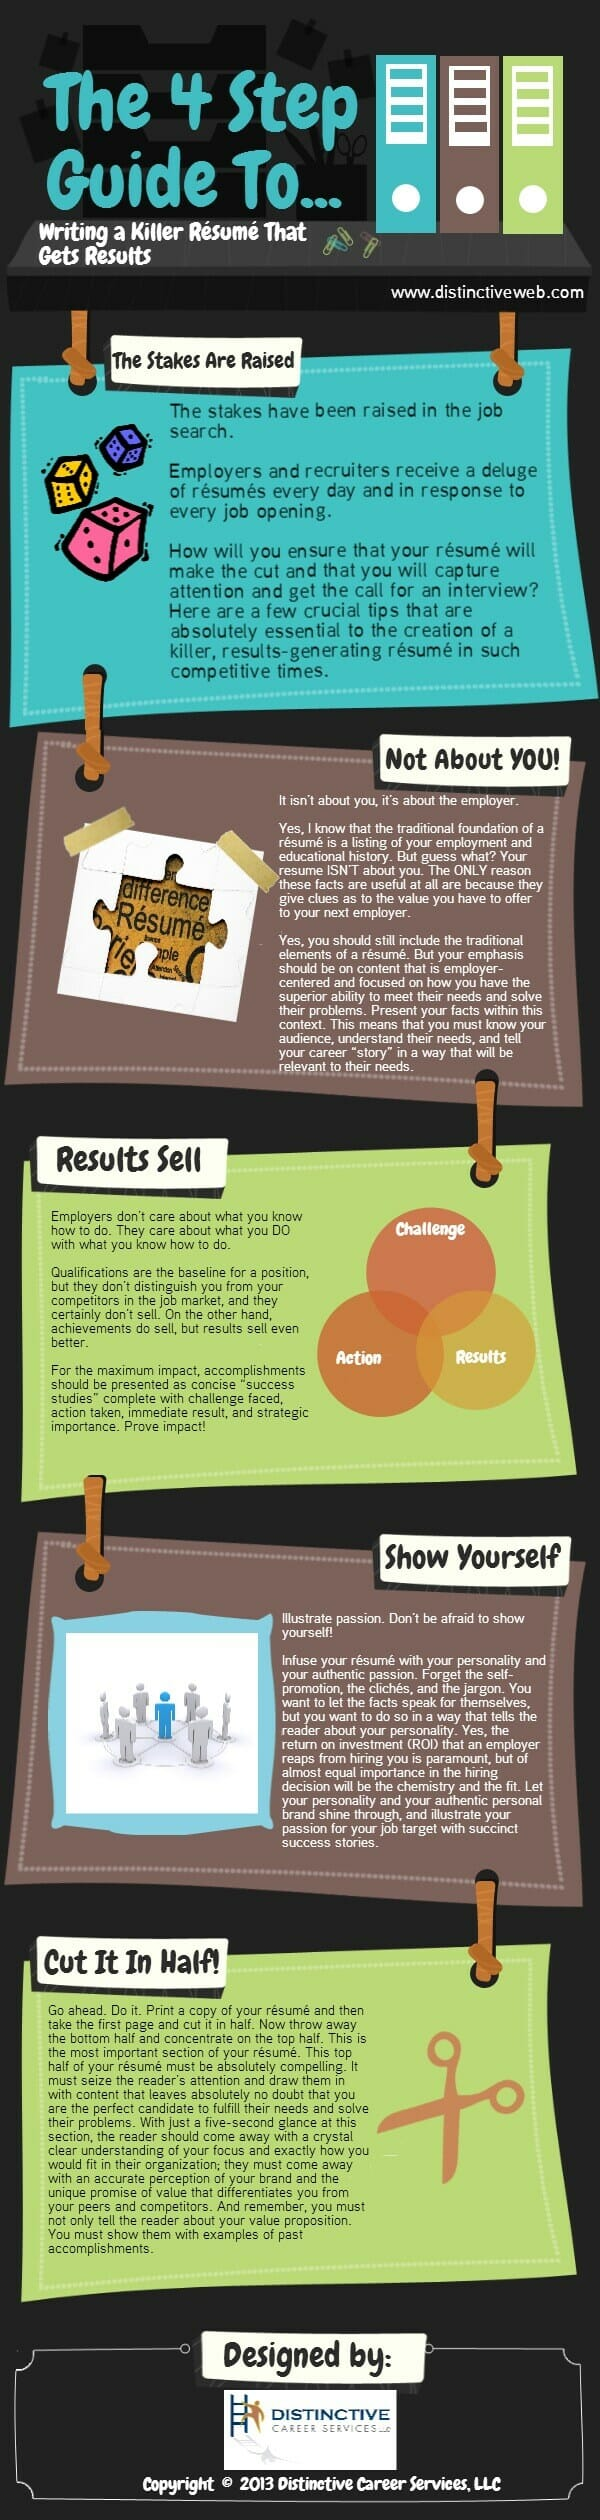 4 Step Guide To Writing a Killer Resume